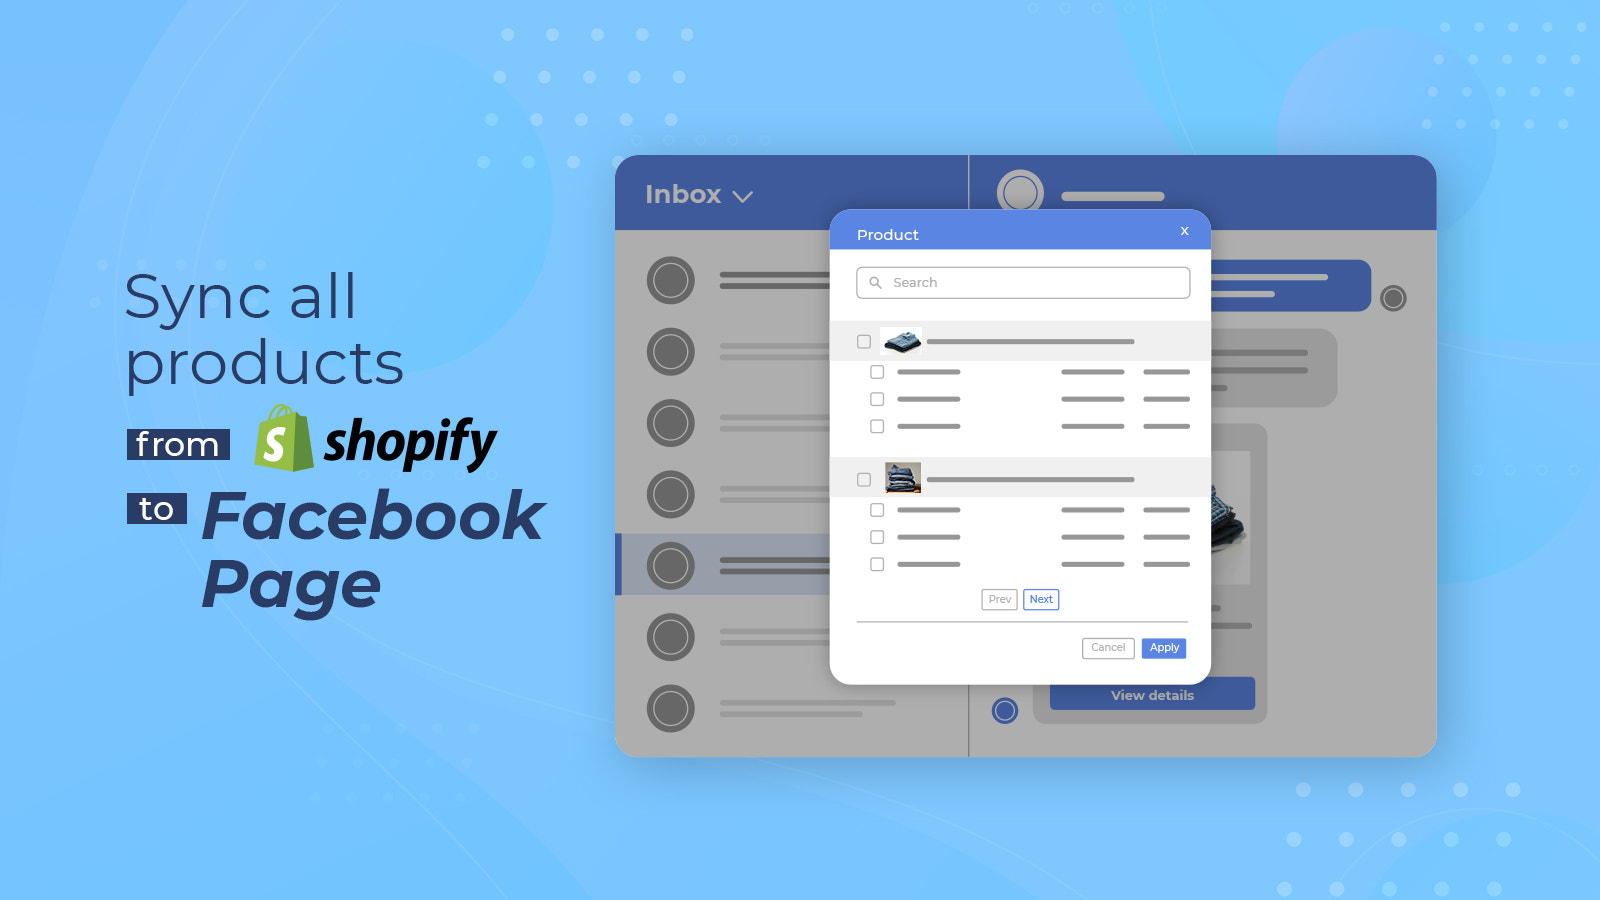 Sync all product shopify to Facebook page